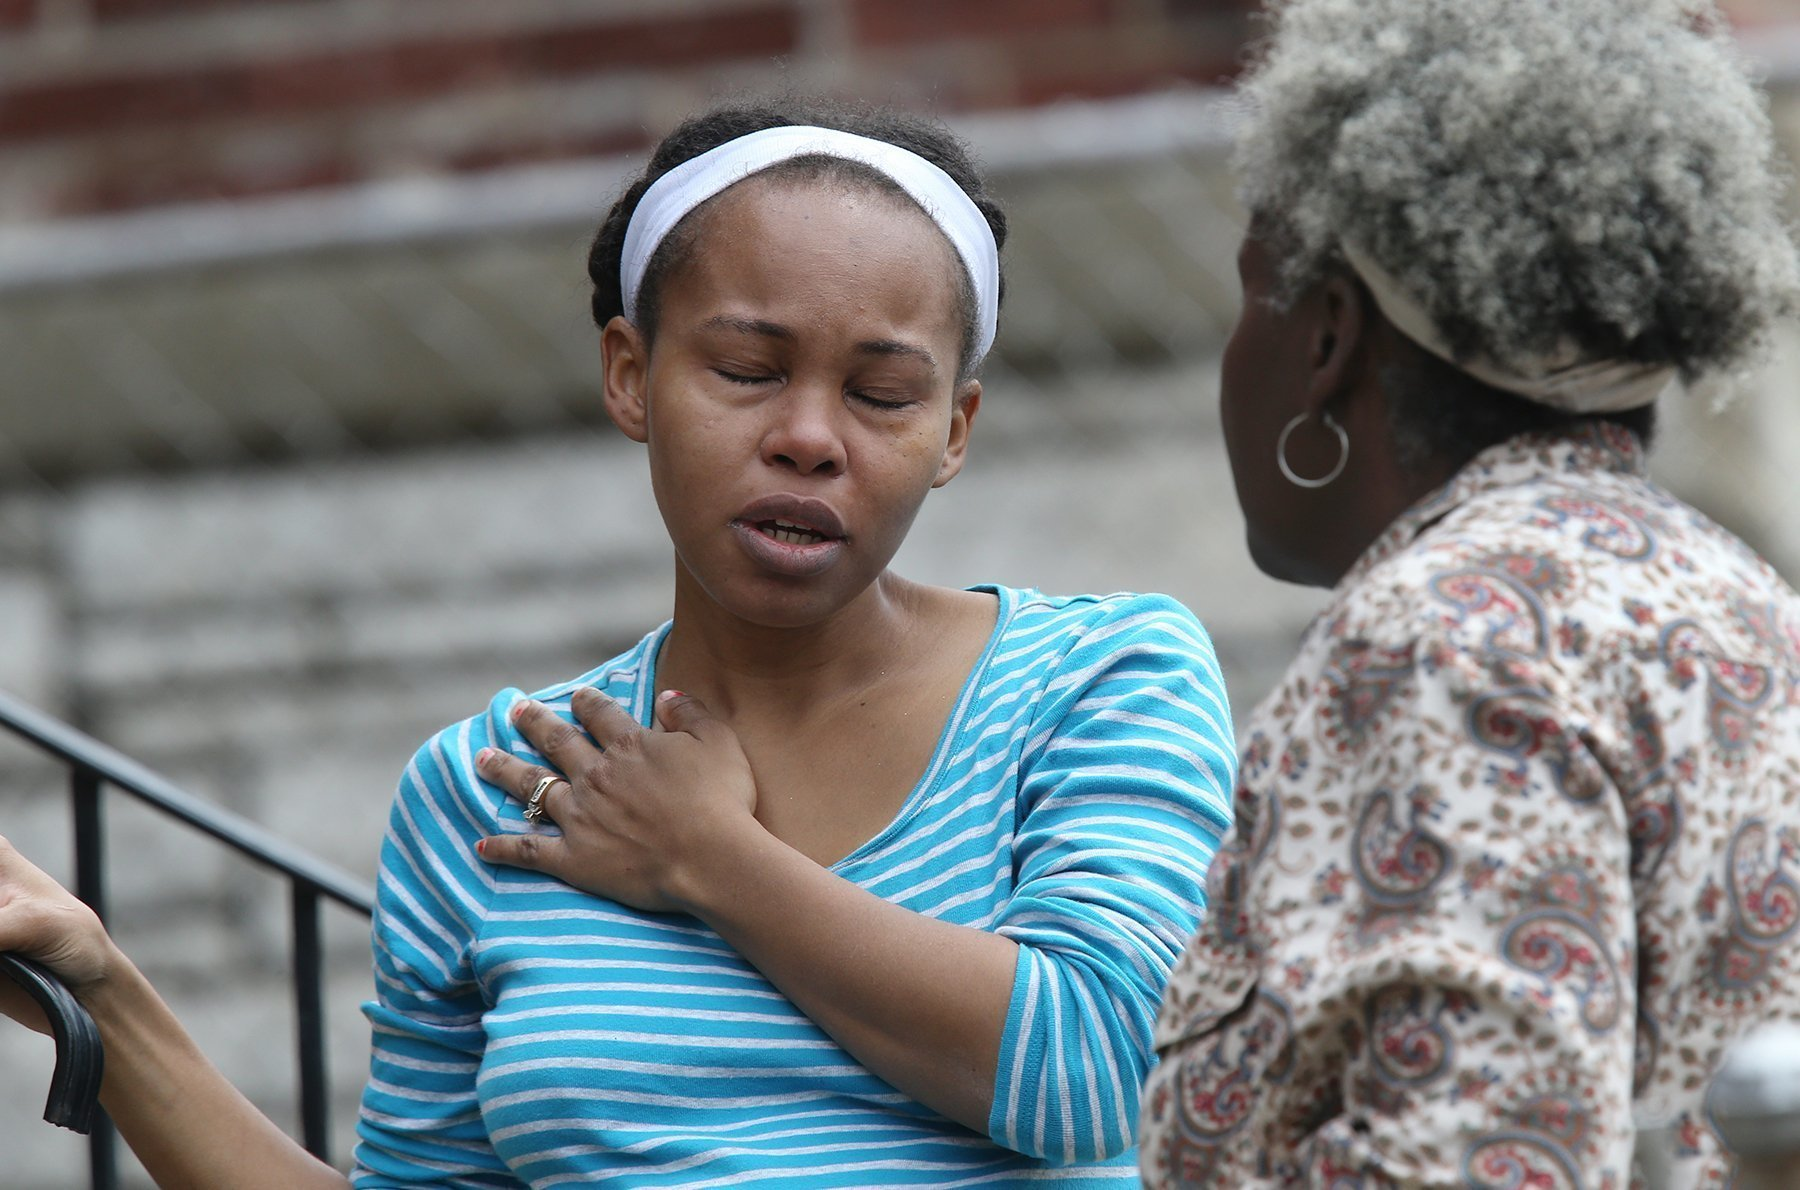 CORRECTION Utility Workers Killed-2 CORRECTS FIRST NAME TO MANYIKA Manyika McCoy, left, cries while she talks to her mother Alice Spann, Thursday, April 20, 2017, in St. Louis. McCoy had just been talking to two Laclede Gas Co. workers just before they were killed by a man who walked up and started shooting. (J.B. Forbes/St. Louis Post-Dispatch via AP)